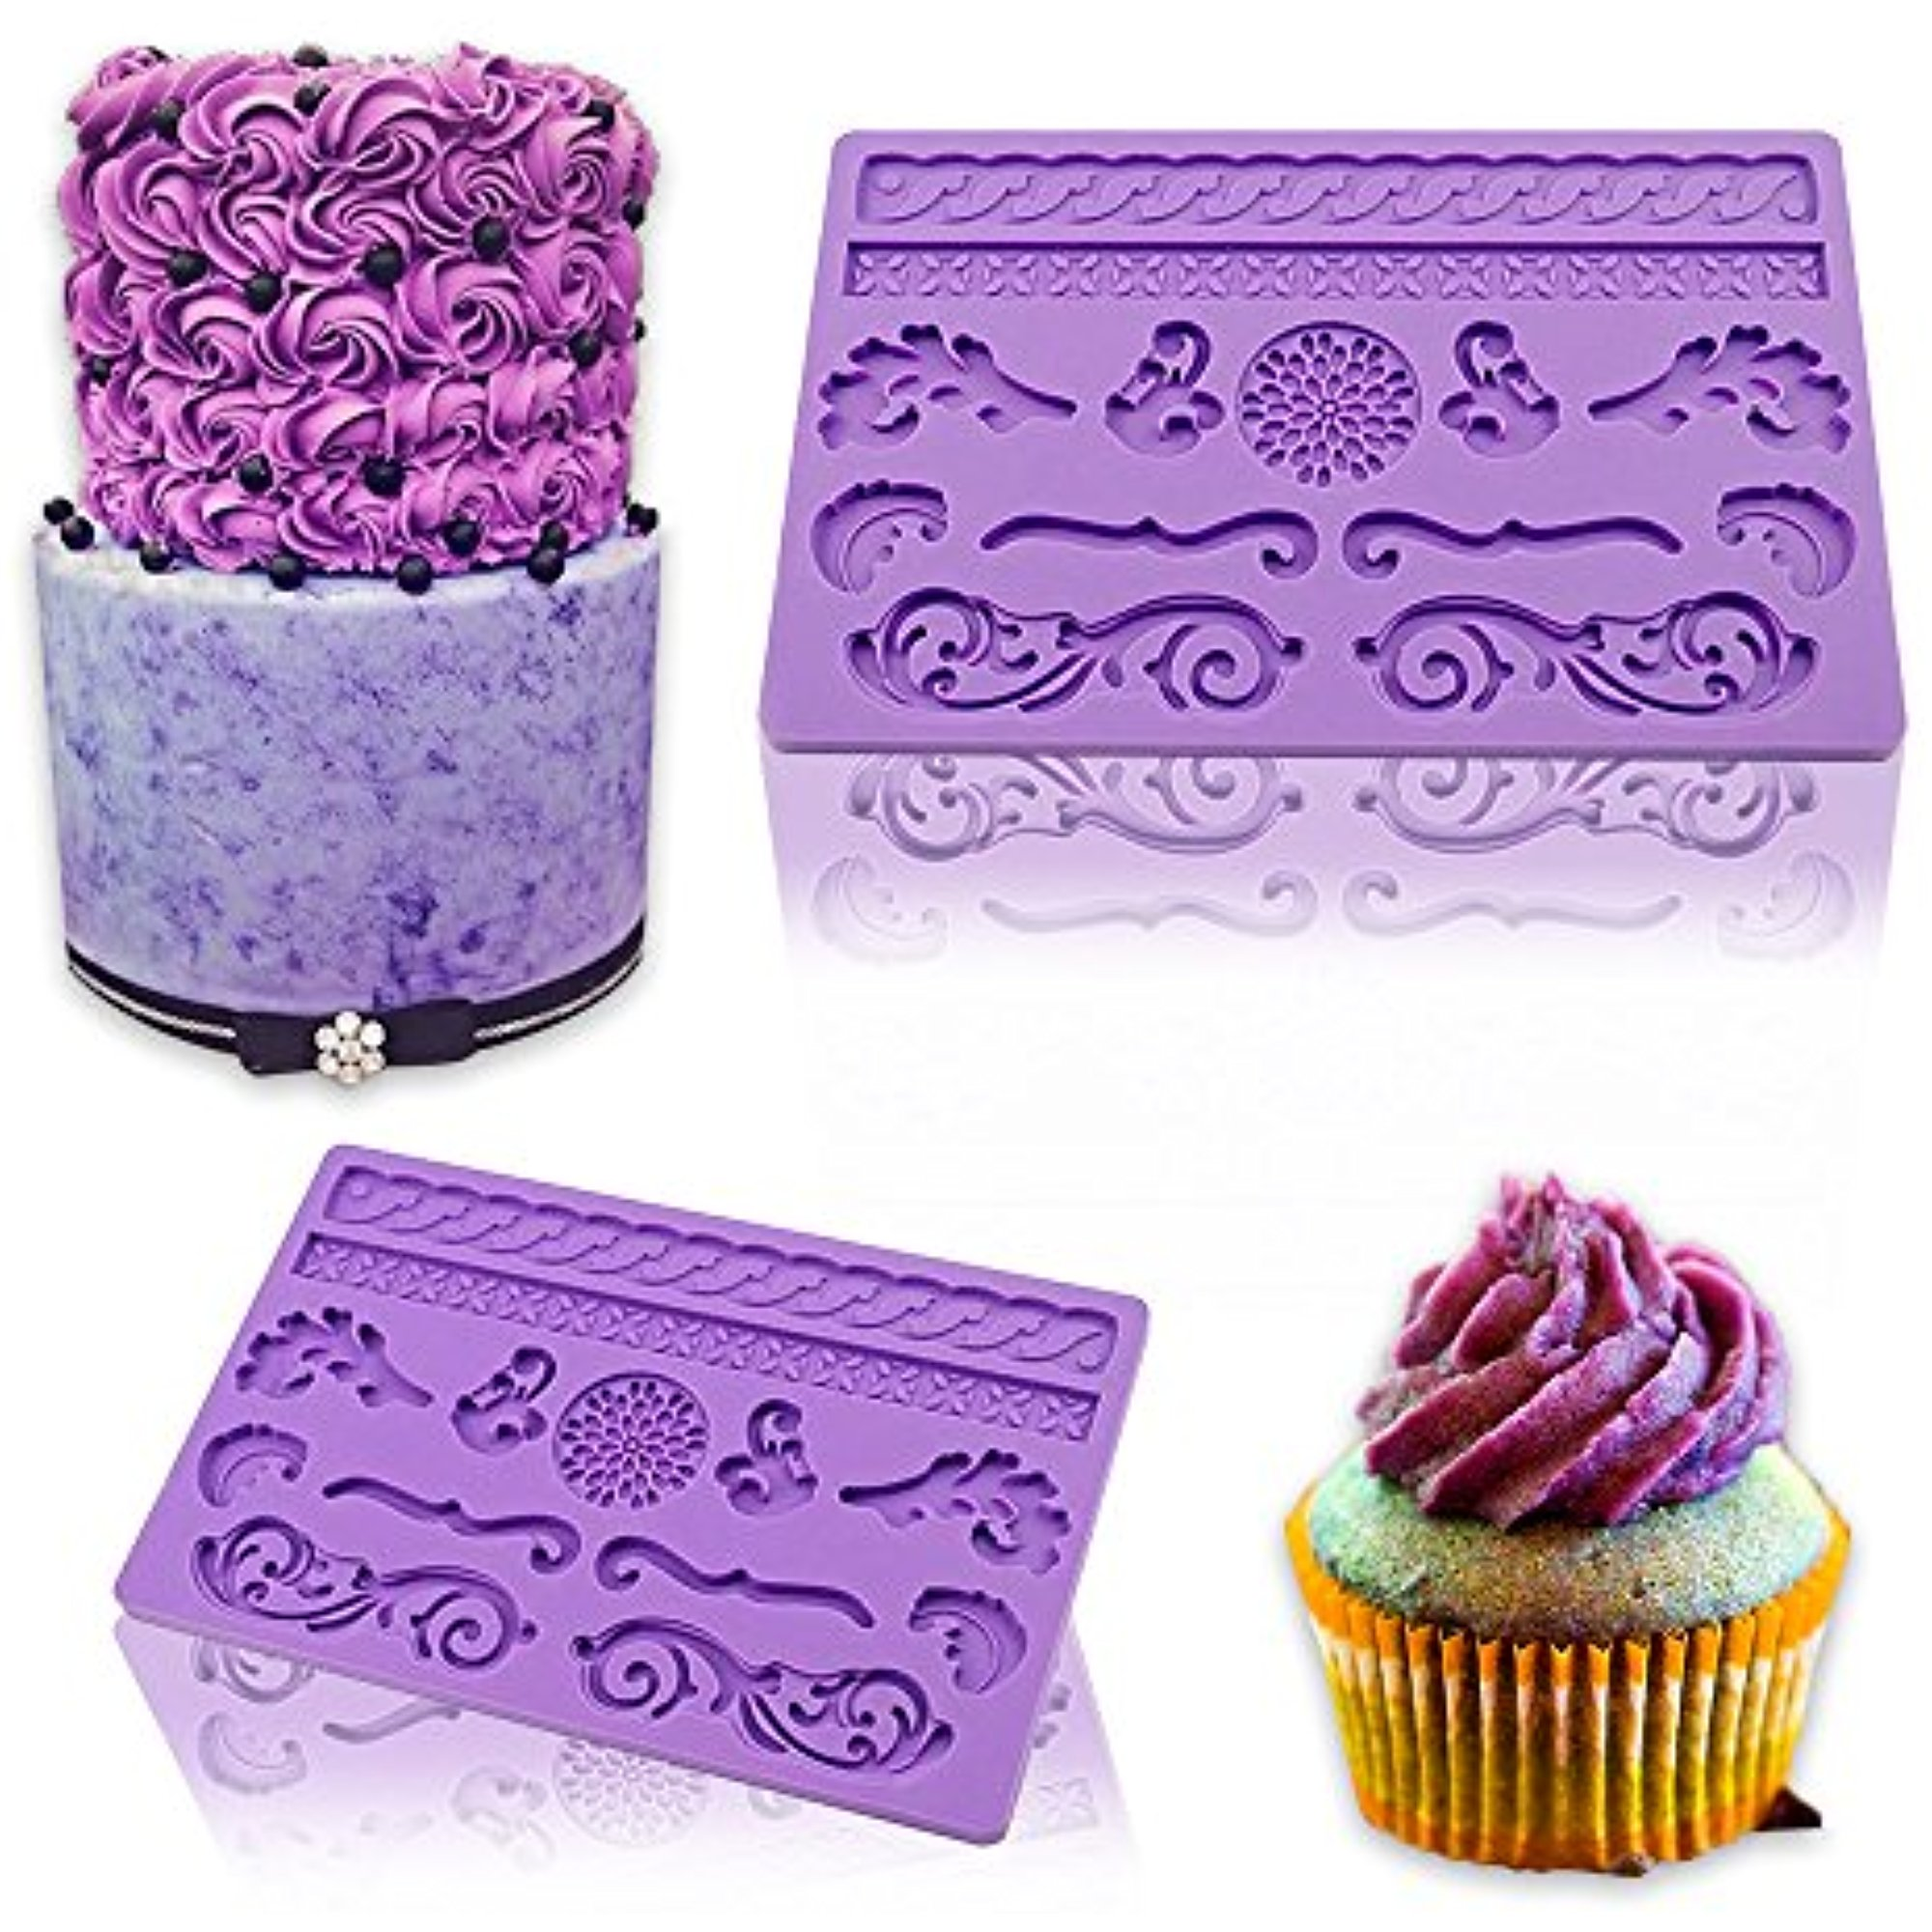 iClover Food Grade Silicone Lace Cake Mold, Fondant Gum Paste Mold Cake Mold, Soap Mold, DIY Cake Decorating by